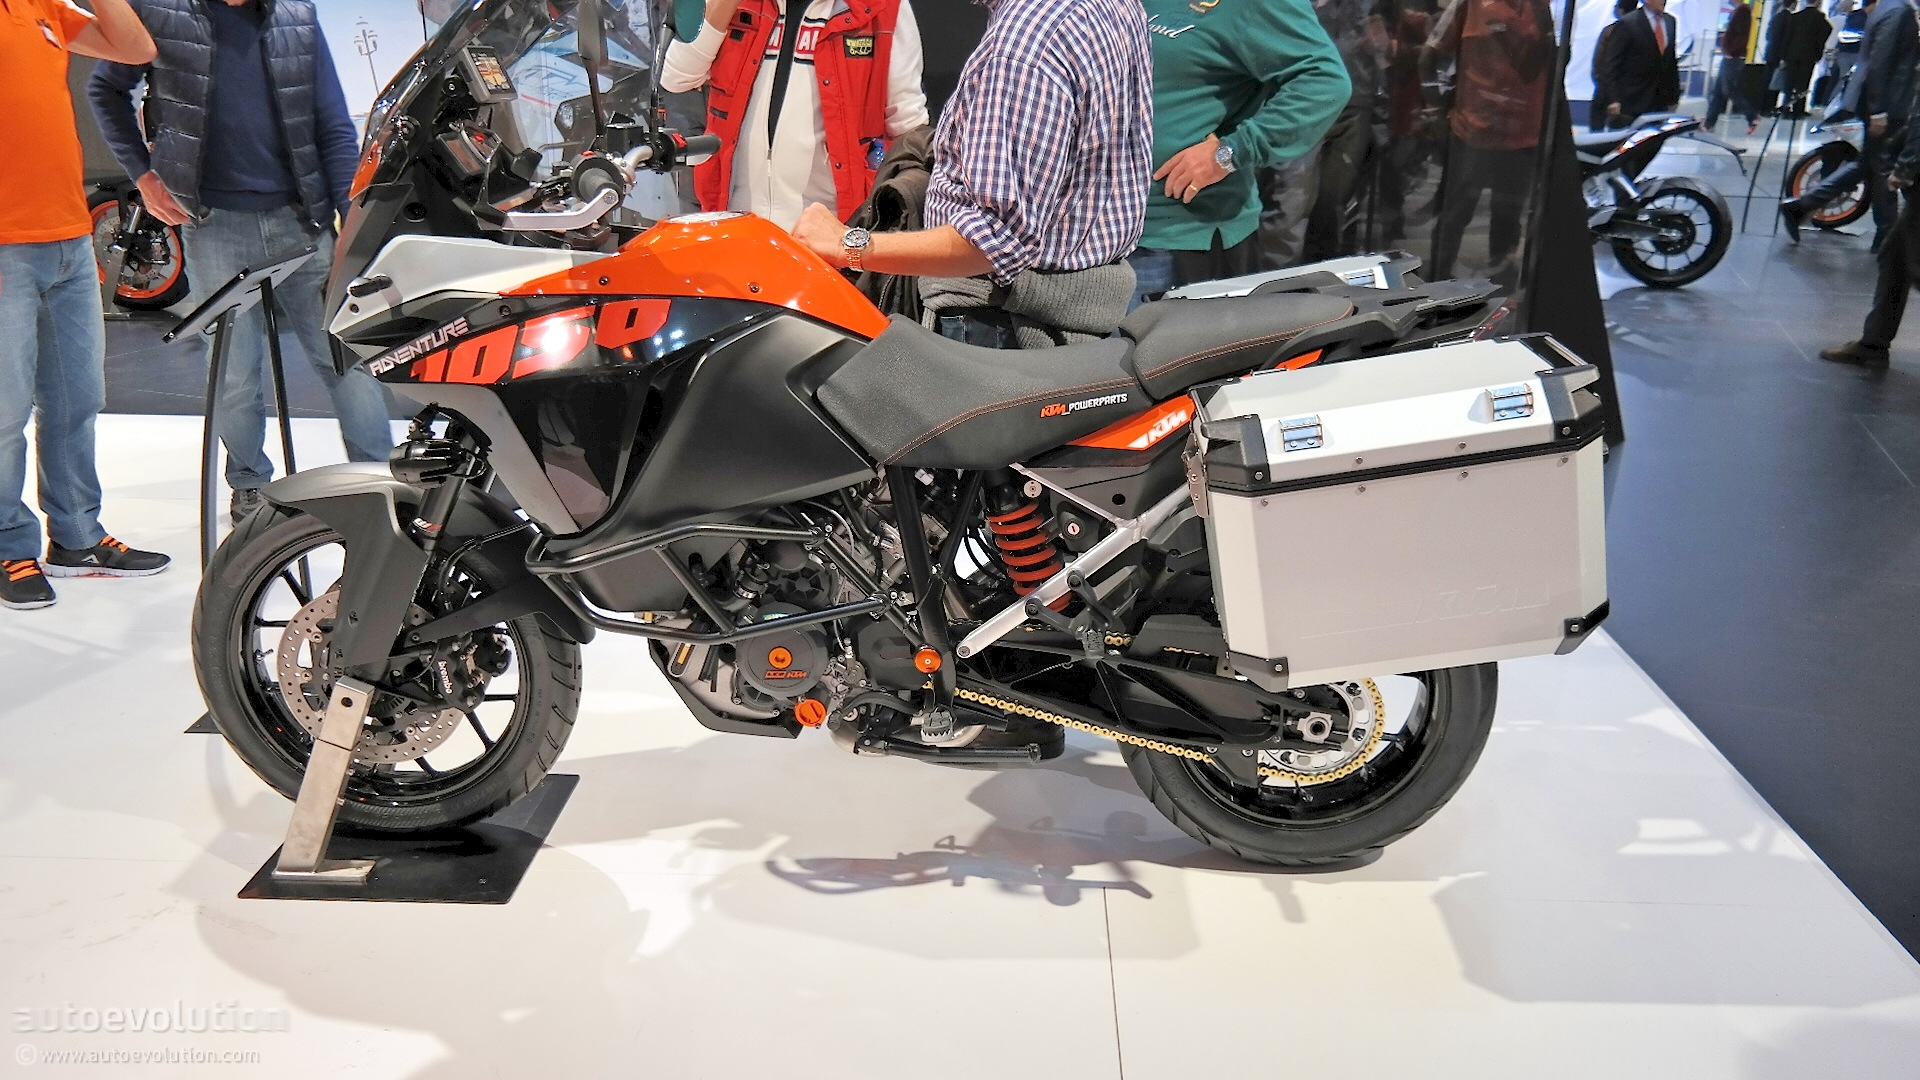 2015 Ktm 1050 Adventure Is Light And Maneuverable At Eicma